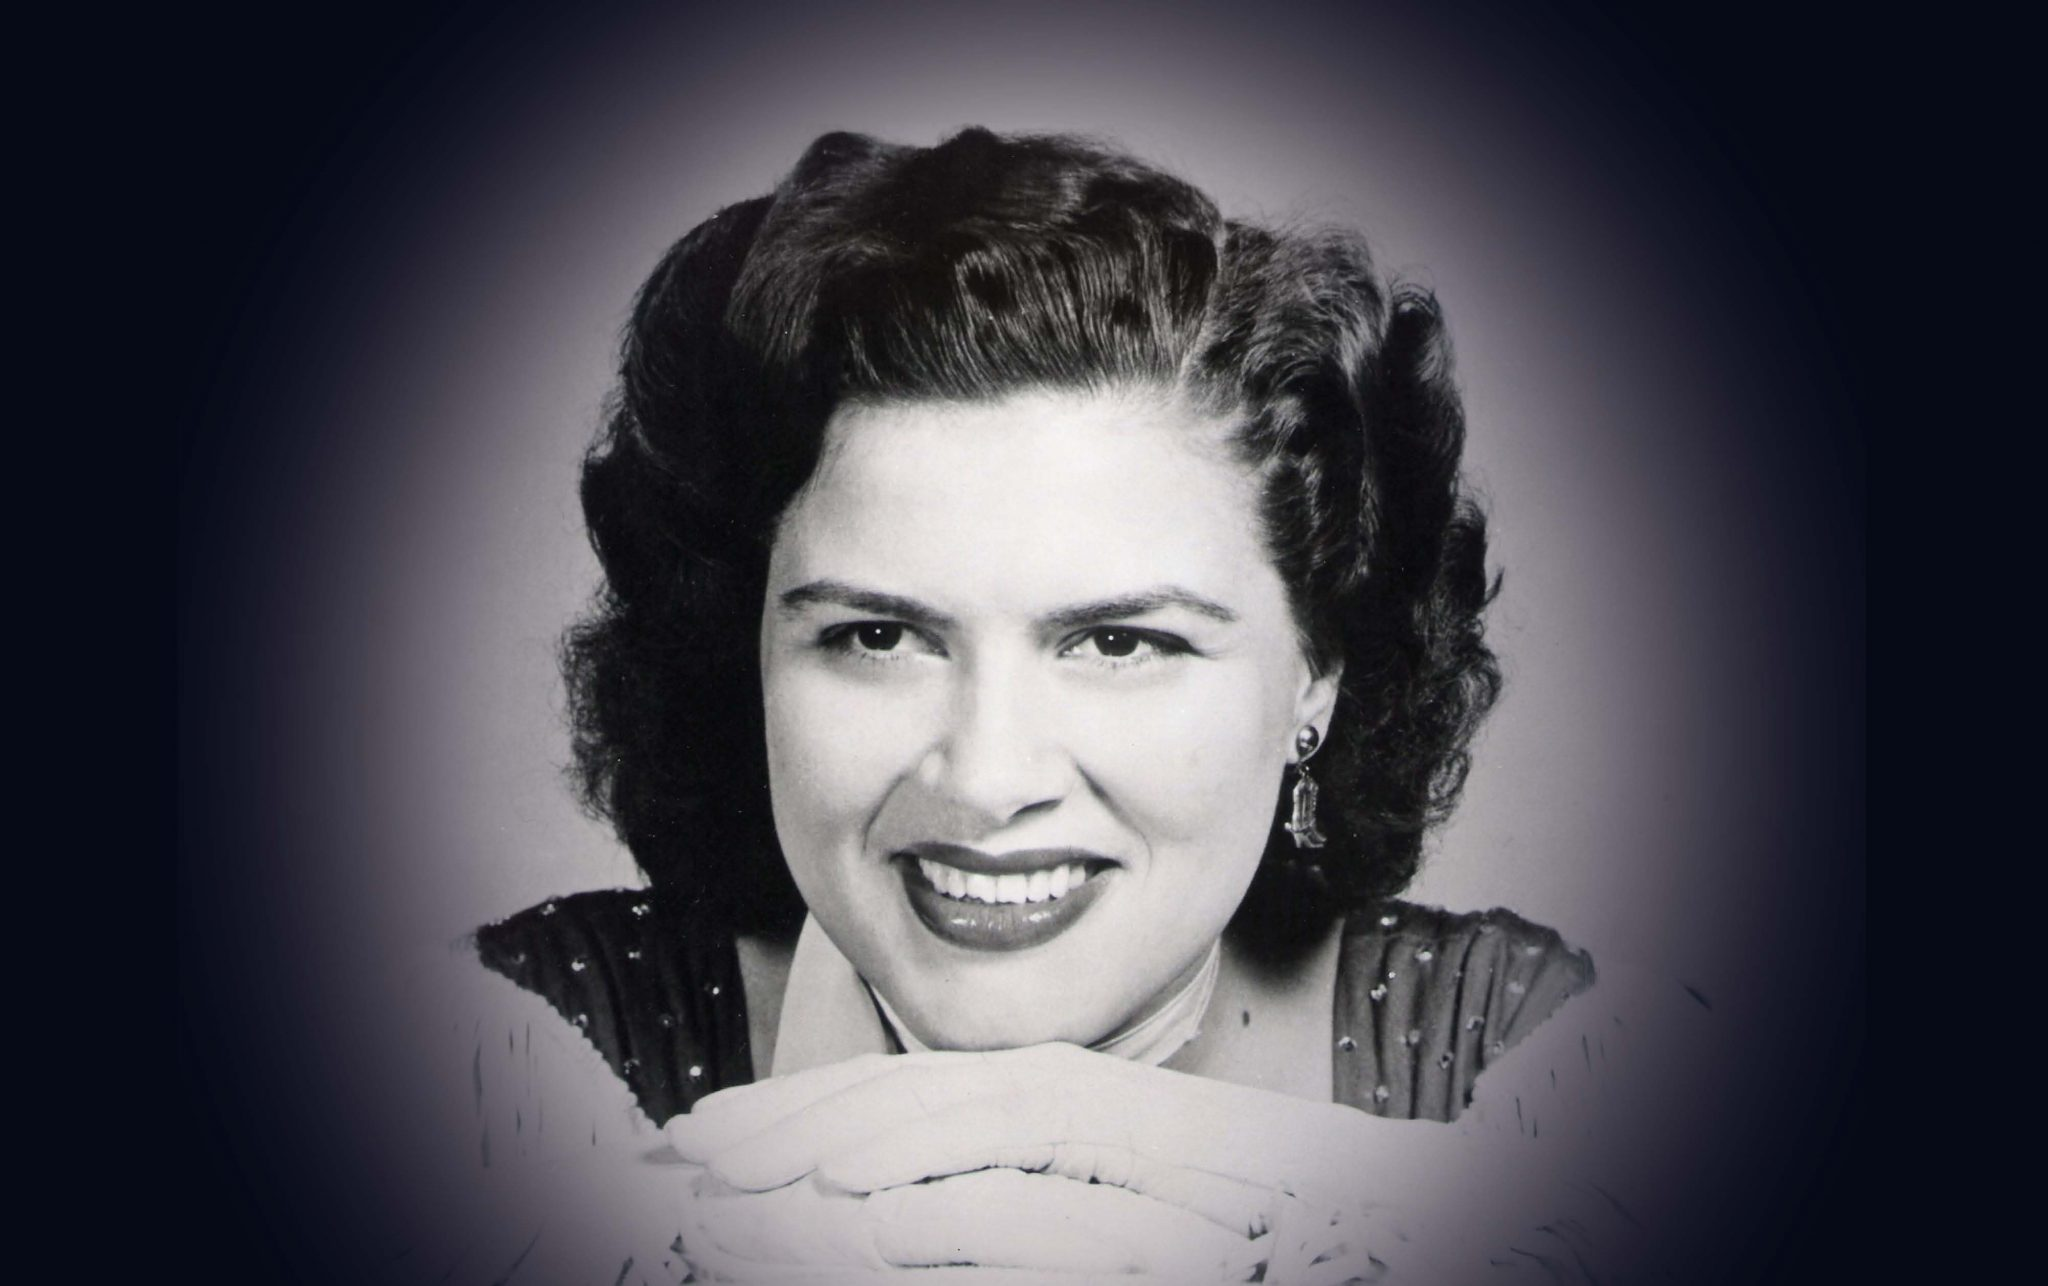 PAST EVENT: A Closer Walk With Patsy Cline – Mark Bell Presents @ Westport Plaza (Missouri), April 17-May 6, 2018